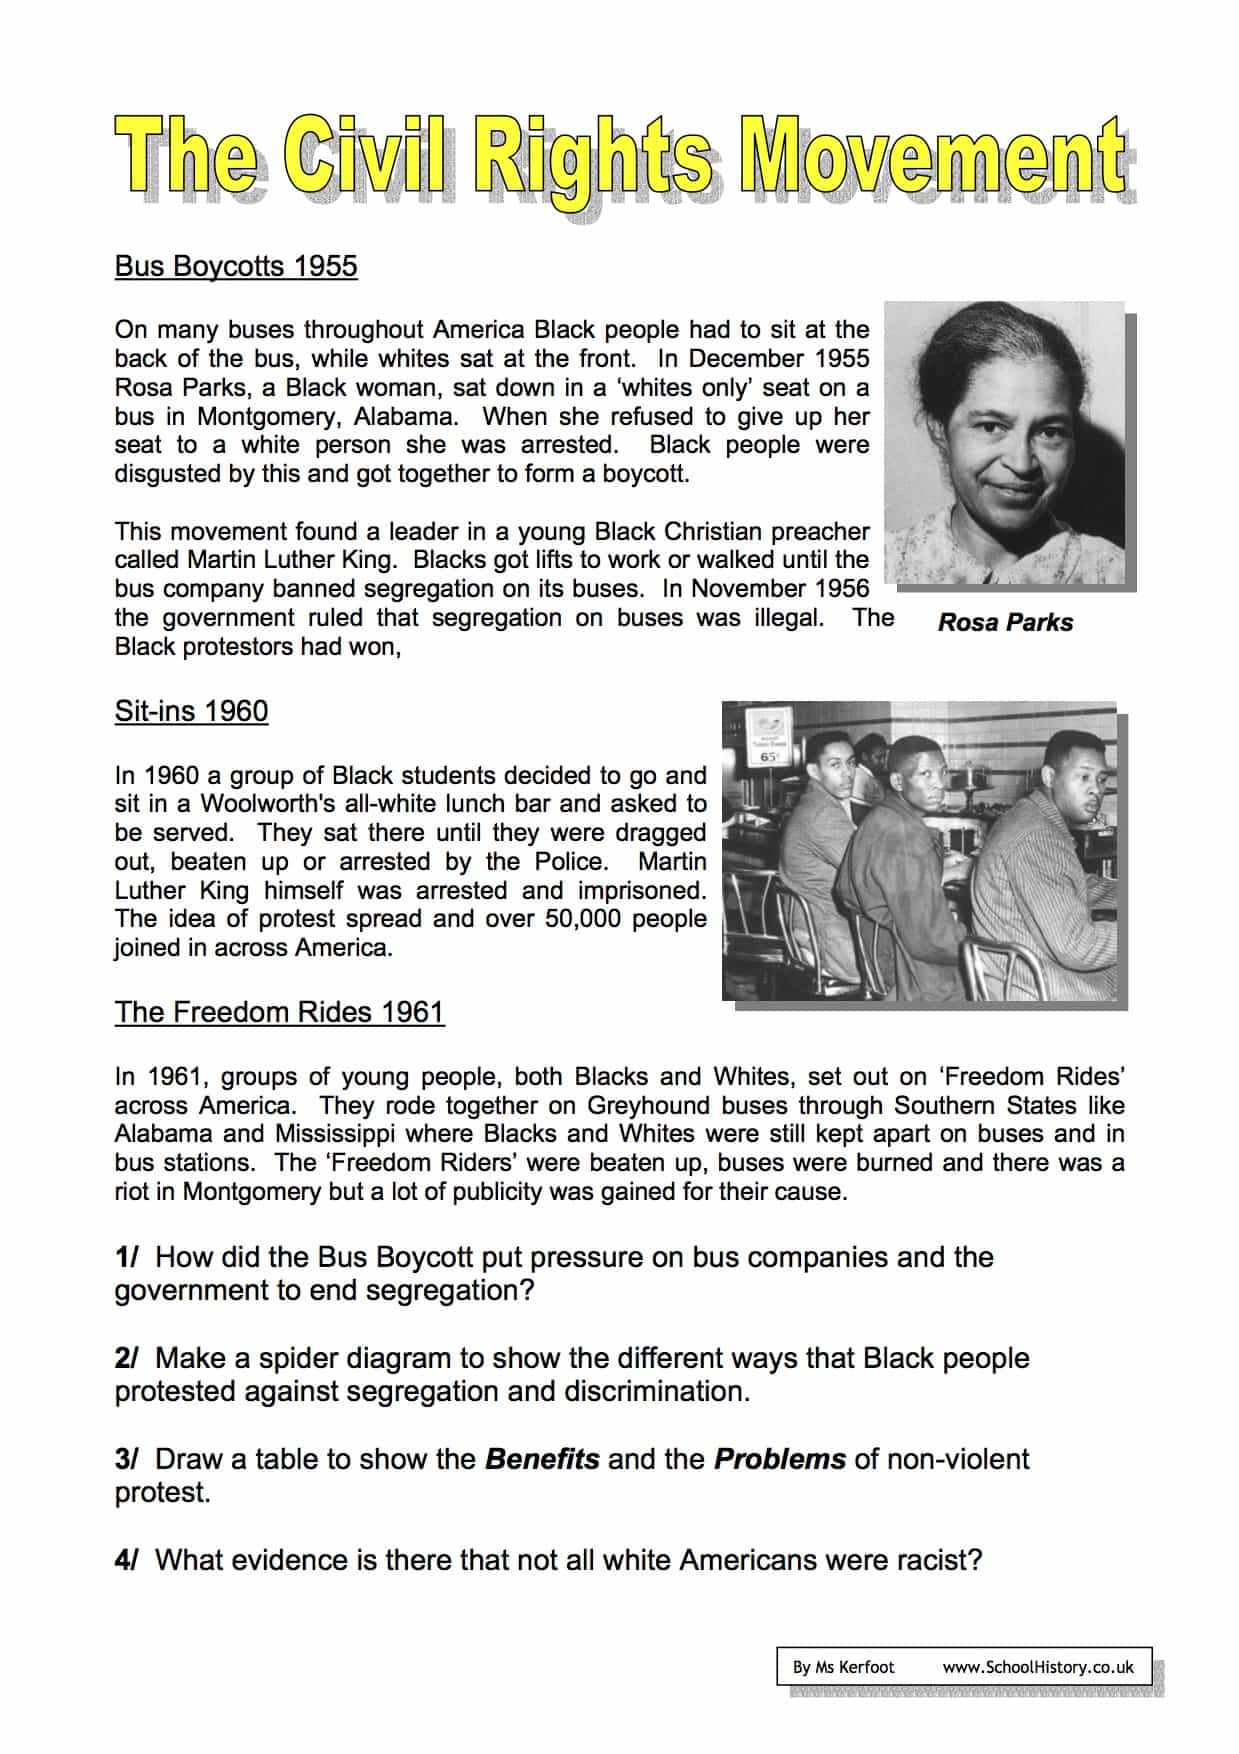 The Civil Rights Movement Worksheets